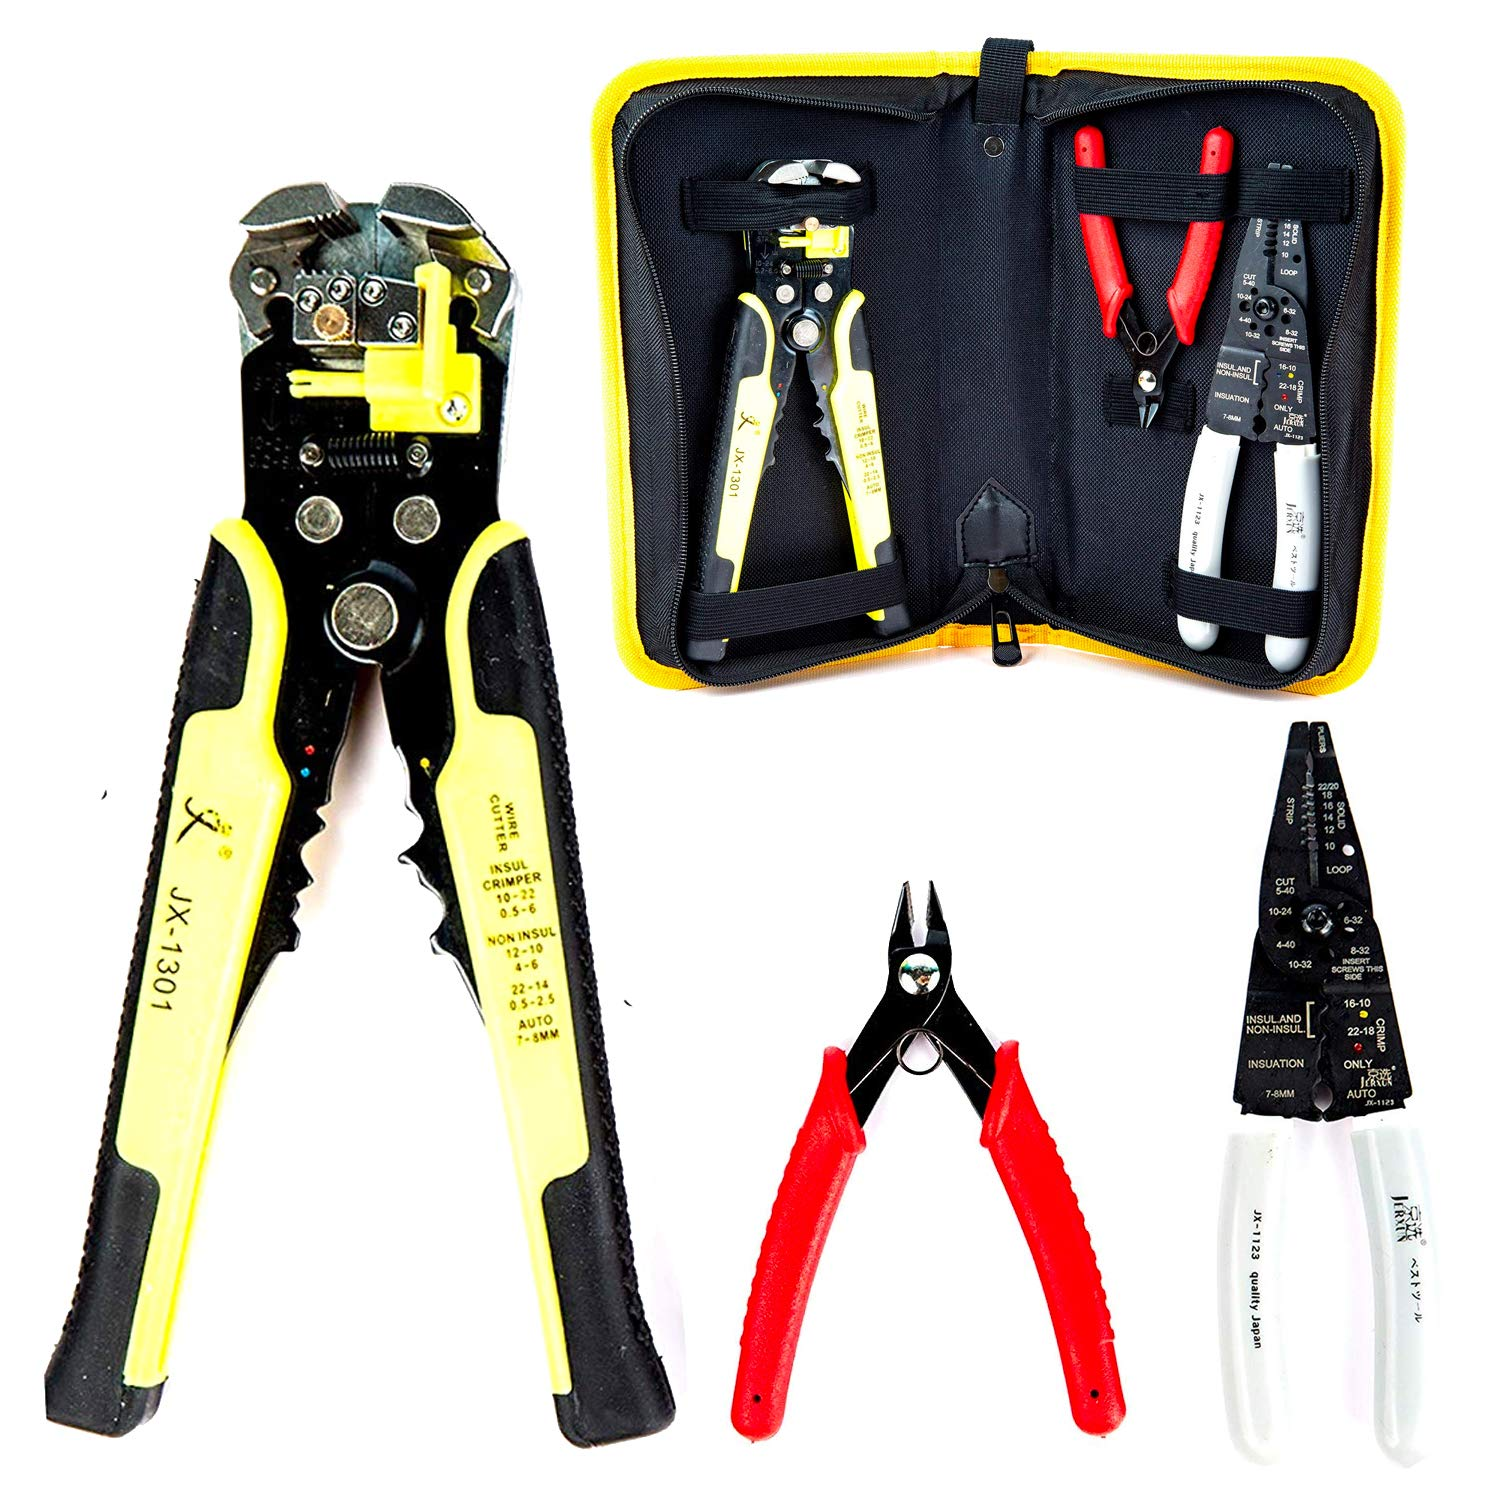 Wire Stripper Crimping Tool Kit, 8 Inch Self-Adjusting Wire Stripper, Automatic Wire Stripping Tool with Multi-Tool Wire Cutter and Wire Cutter, Cutting Pliers Tool with Storage Bag by Fstop Labs